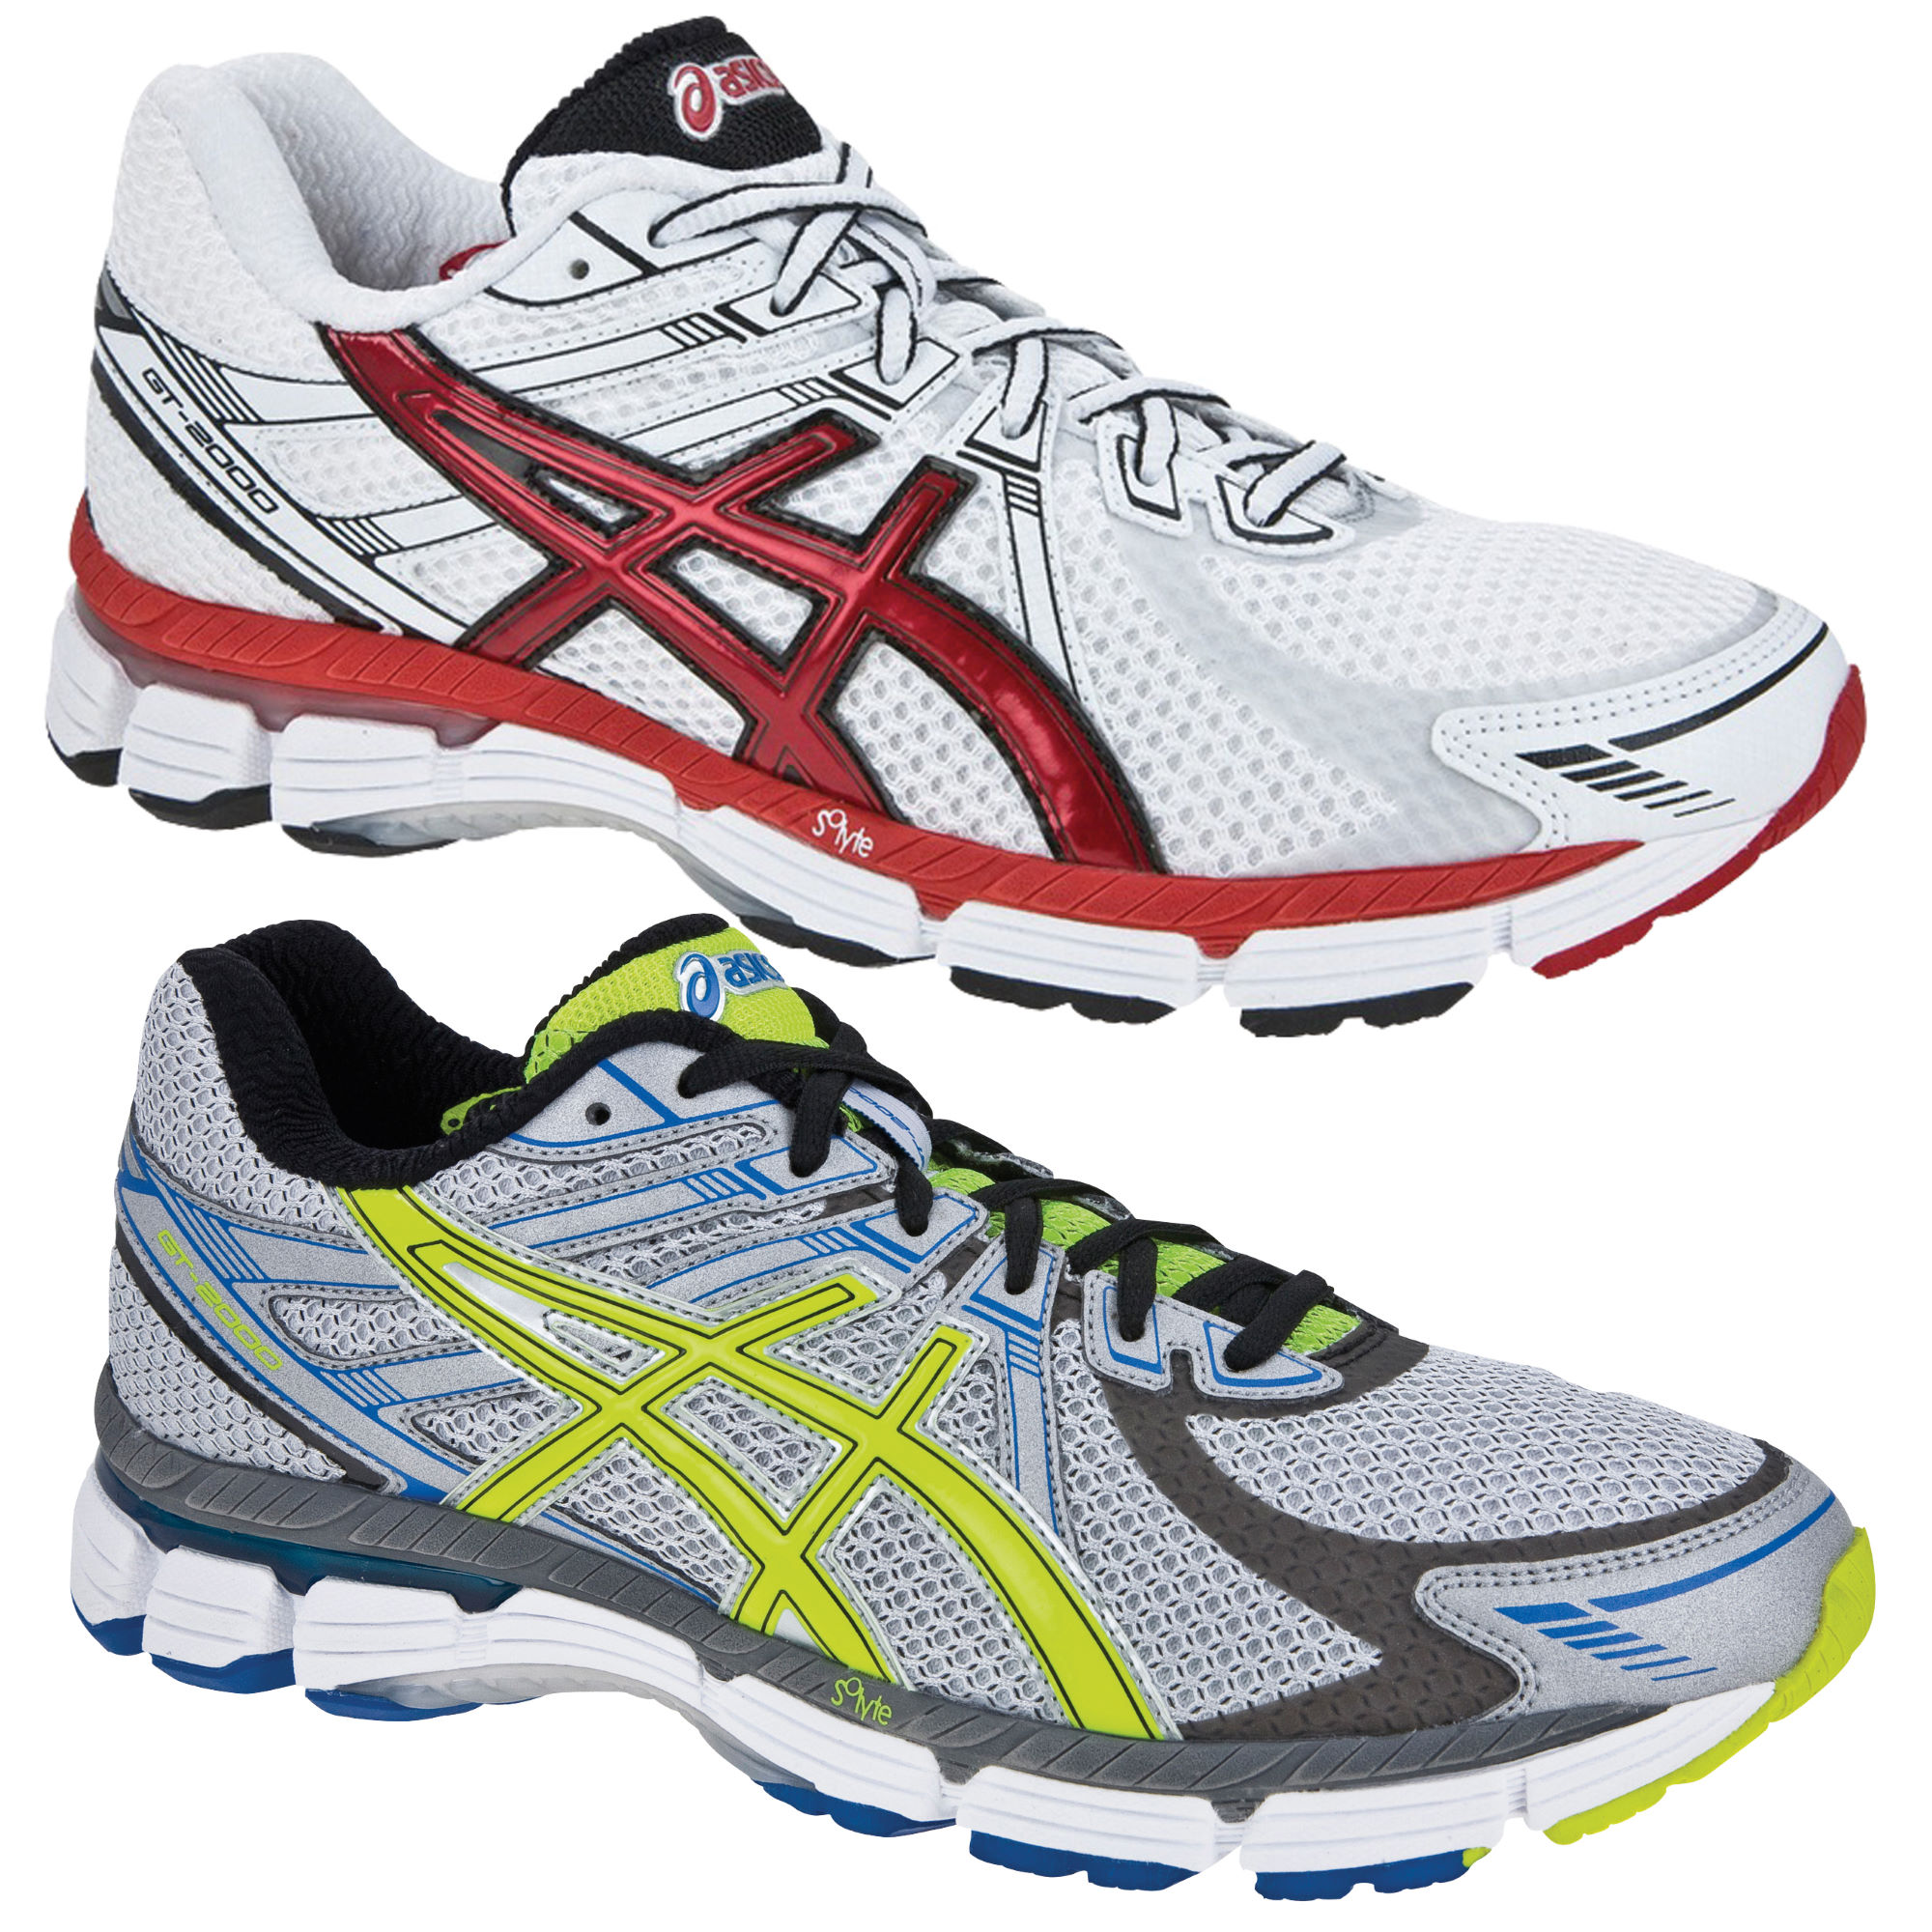 wiggle asics gt 2000 shoes stability running shoes. Black Bedroom Furniture Sets. Home Design Ideas